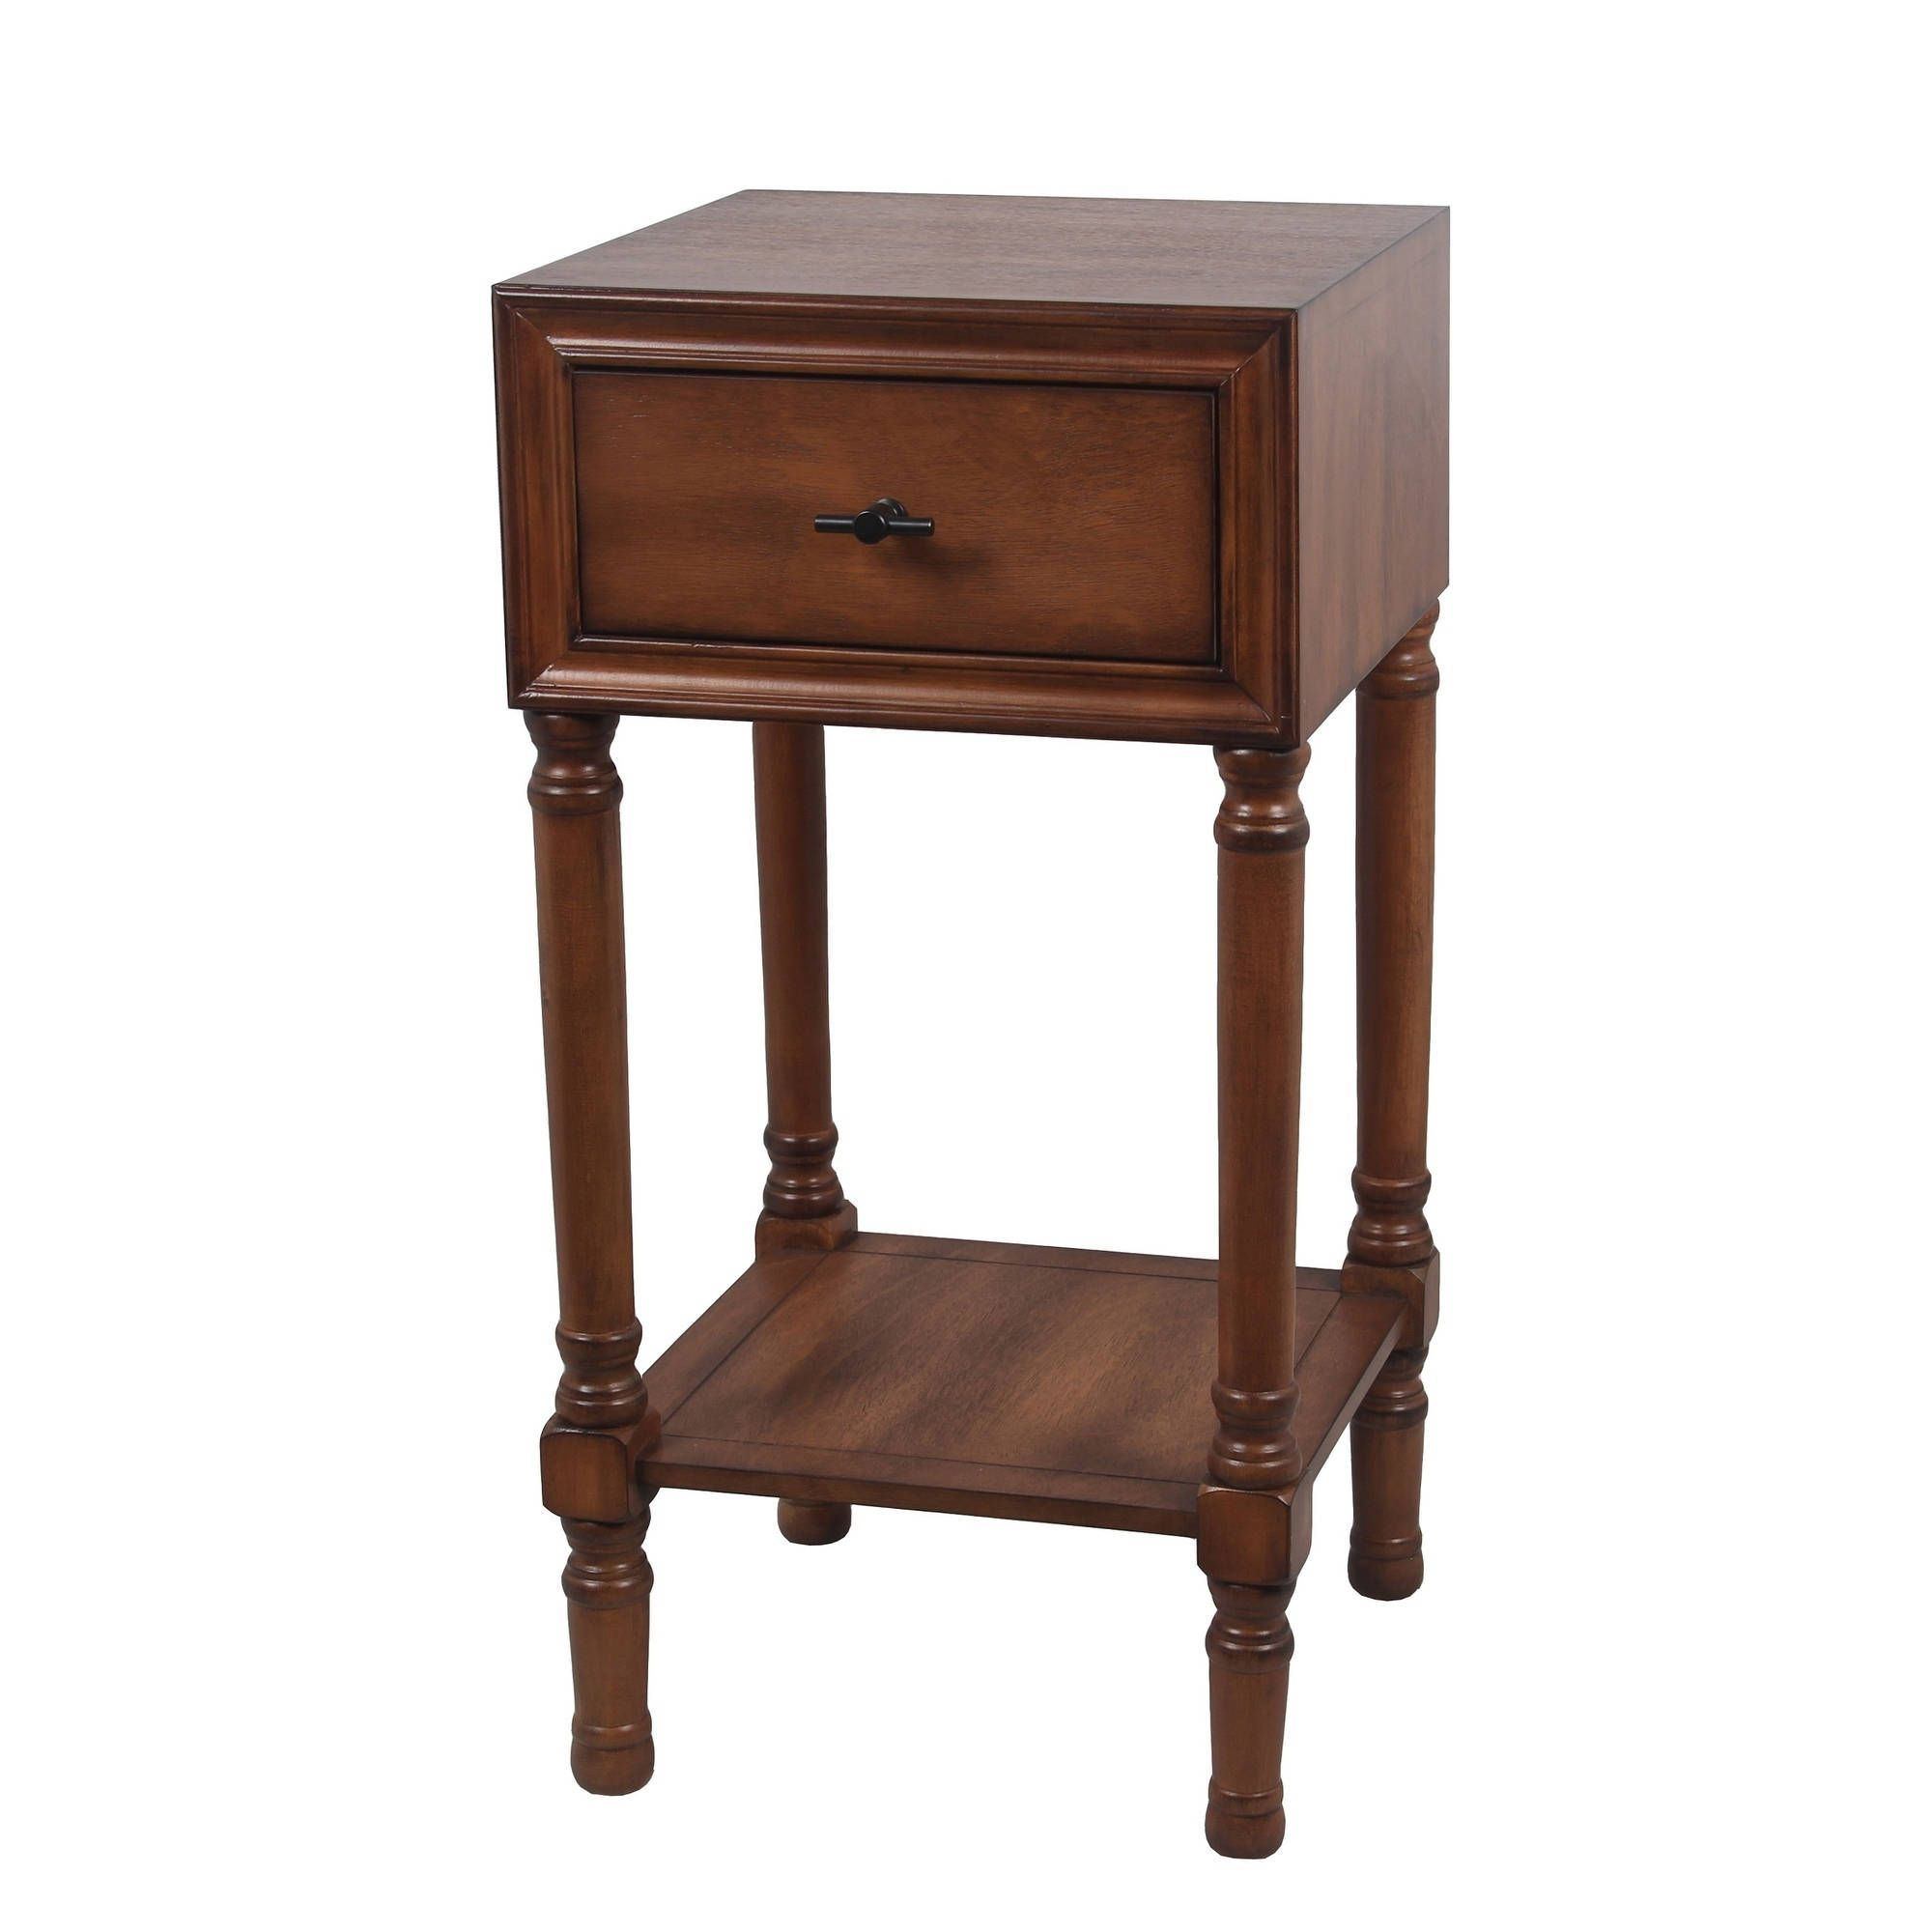 privilege draw accent table honeynut brown and legs half round kitchen hairpin leg end counter height side marble aqua blue globe lamp tall bar set pottery barn mahogany coffee